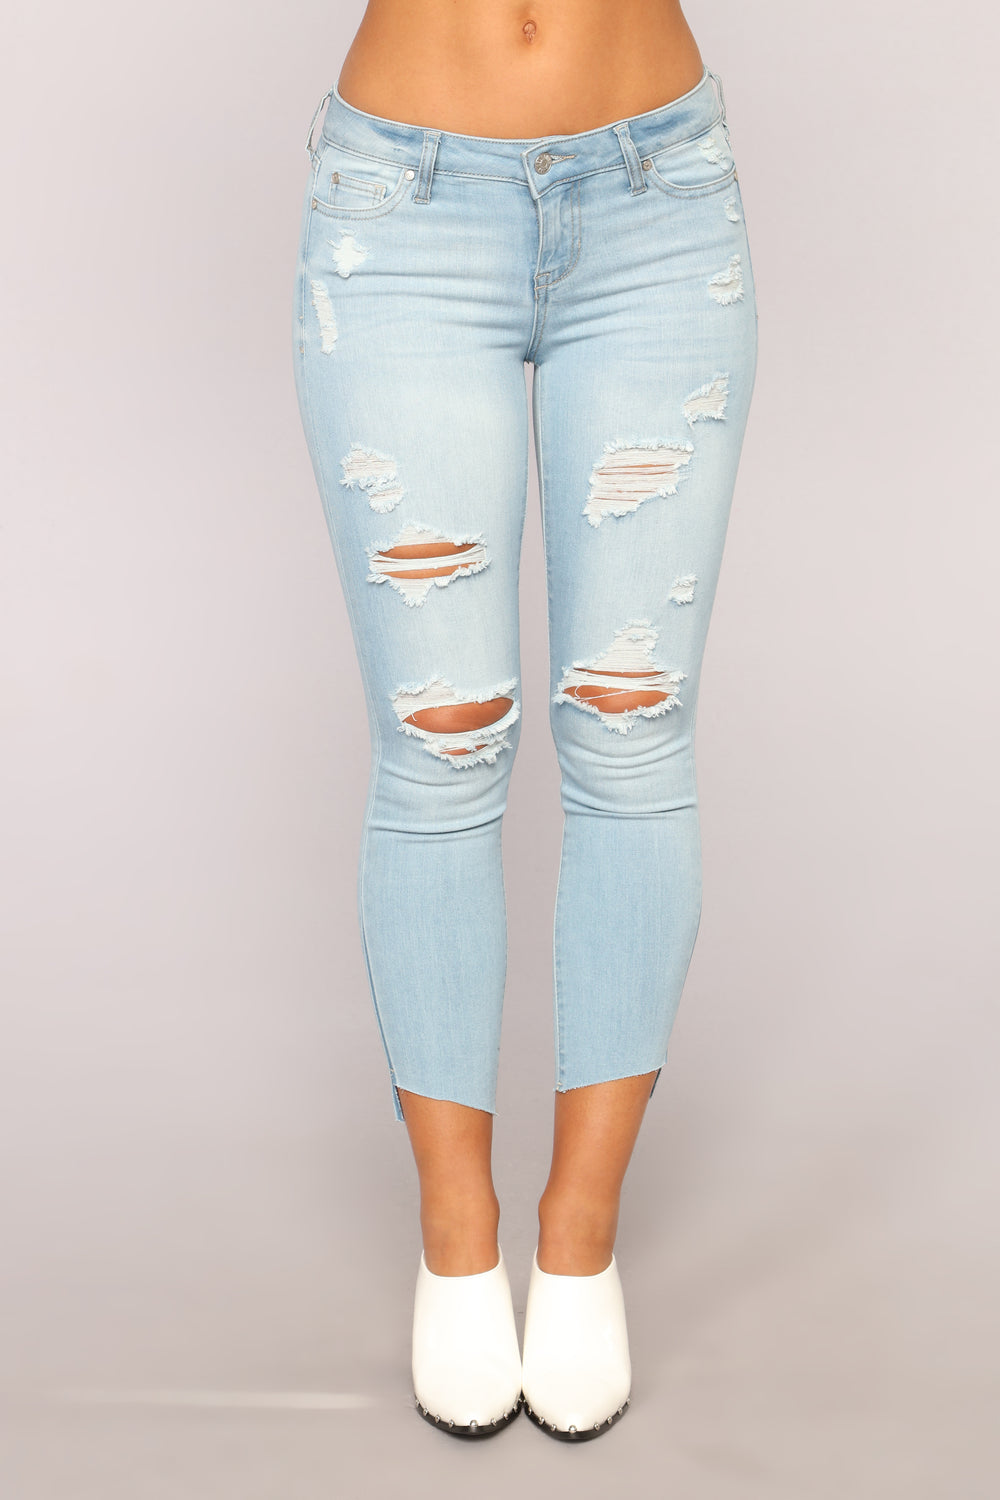 Always On It Ankle Jeans - Light Blue Wash